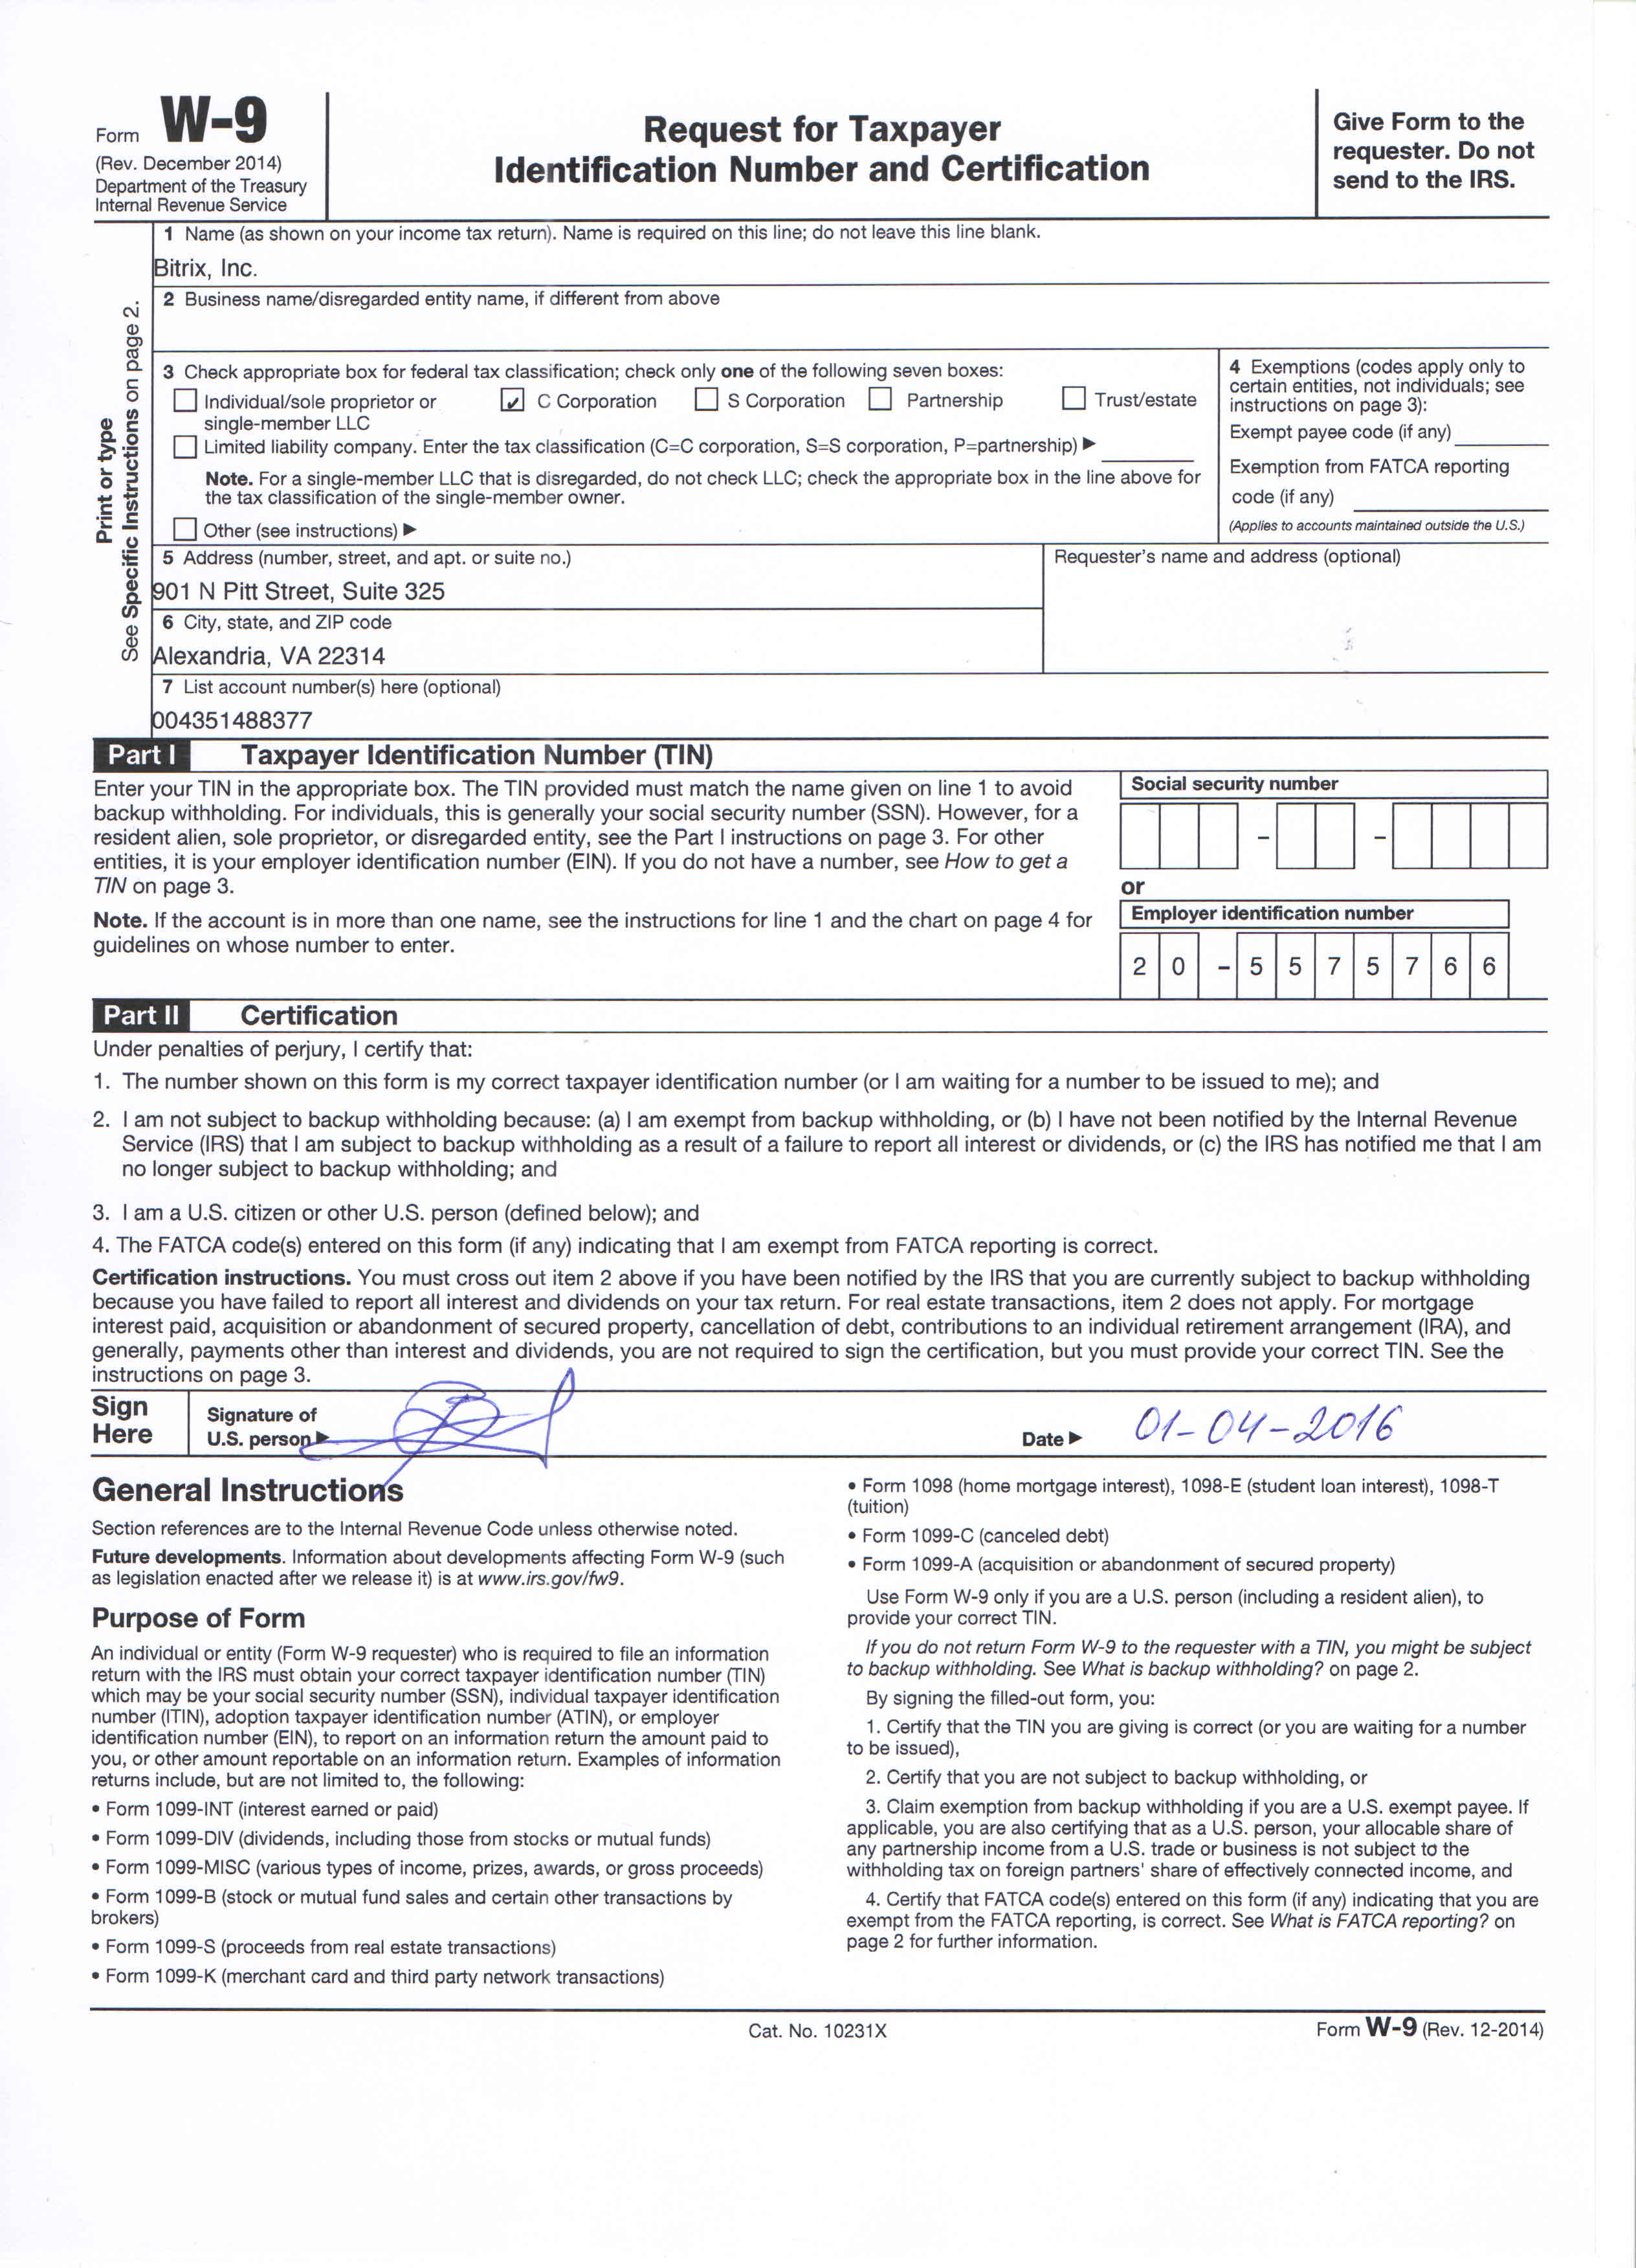 How to fill out a w-9 form online | hellosign blog.